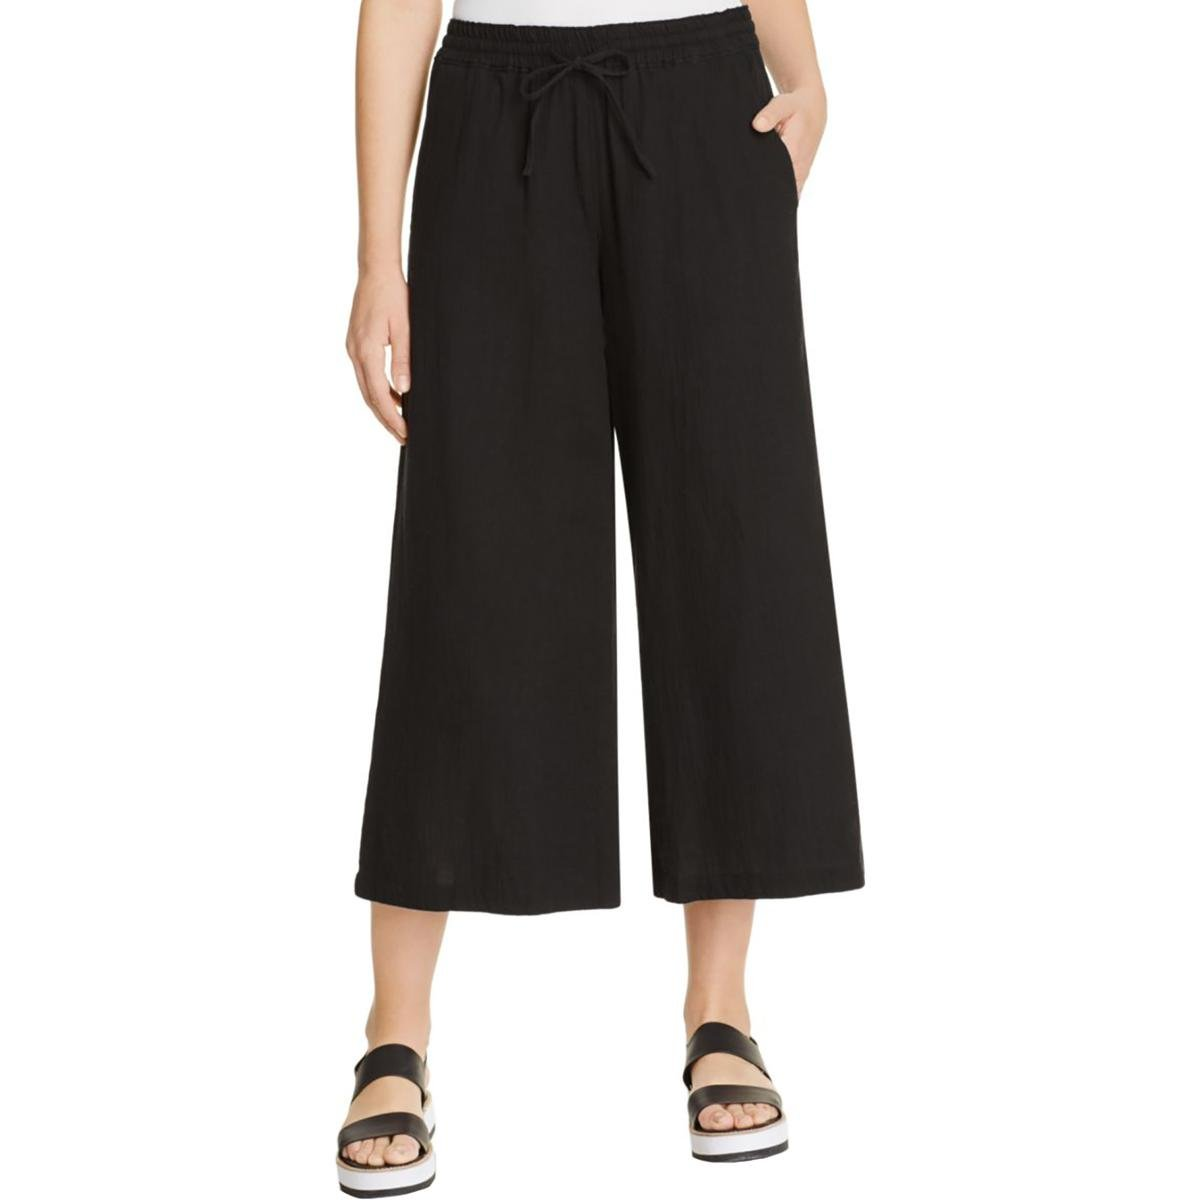 Eileen Fisher Womens Petites Organic Cotton Wide Leg Cropped Pants Black PS